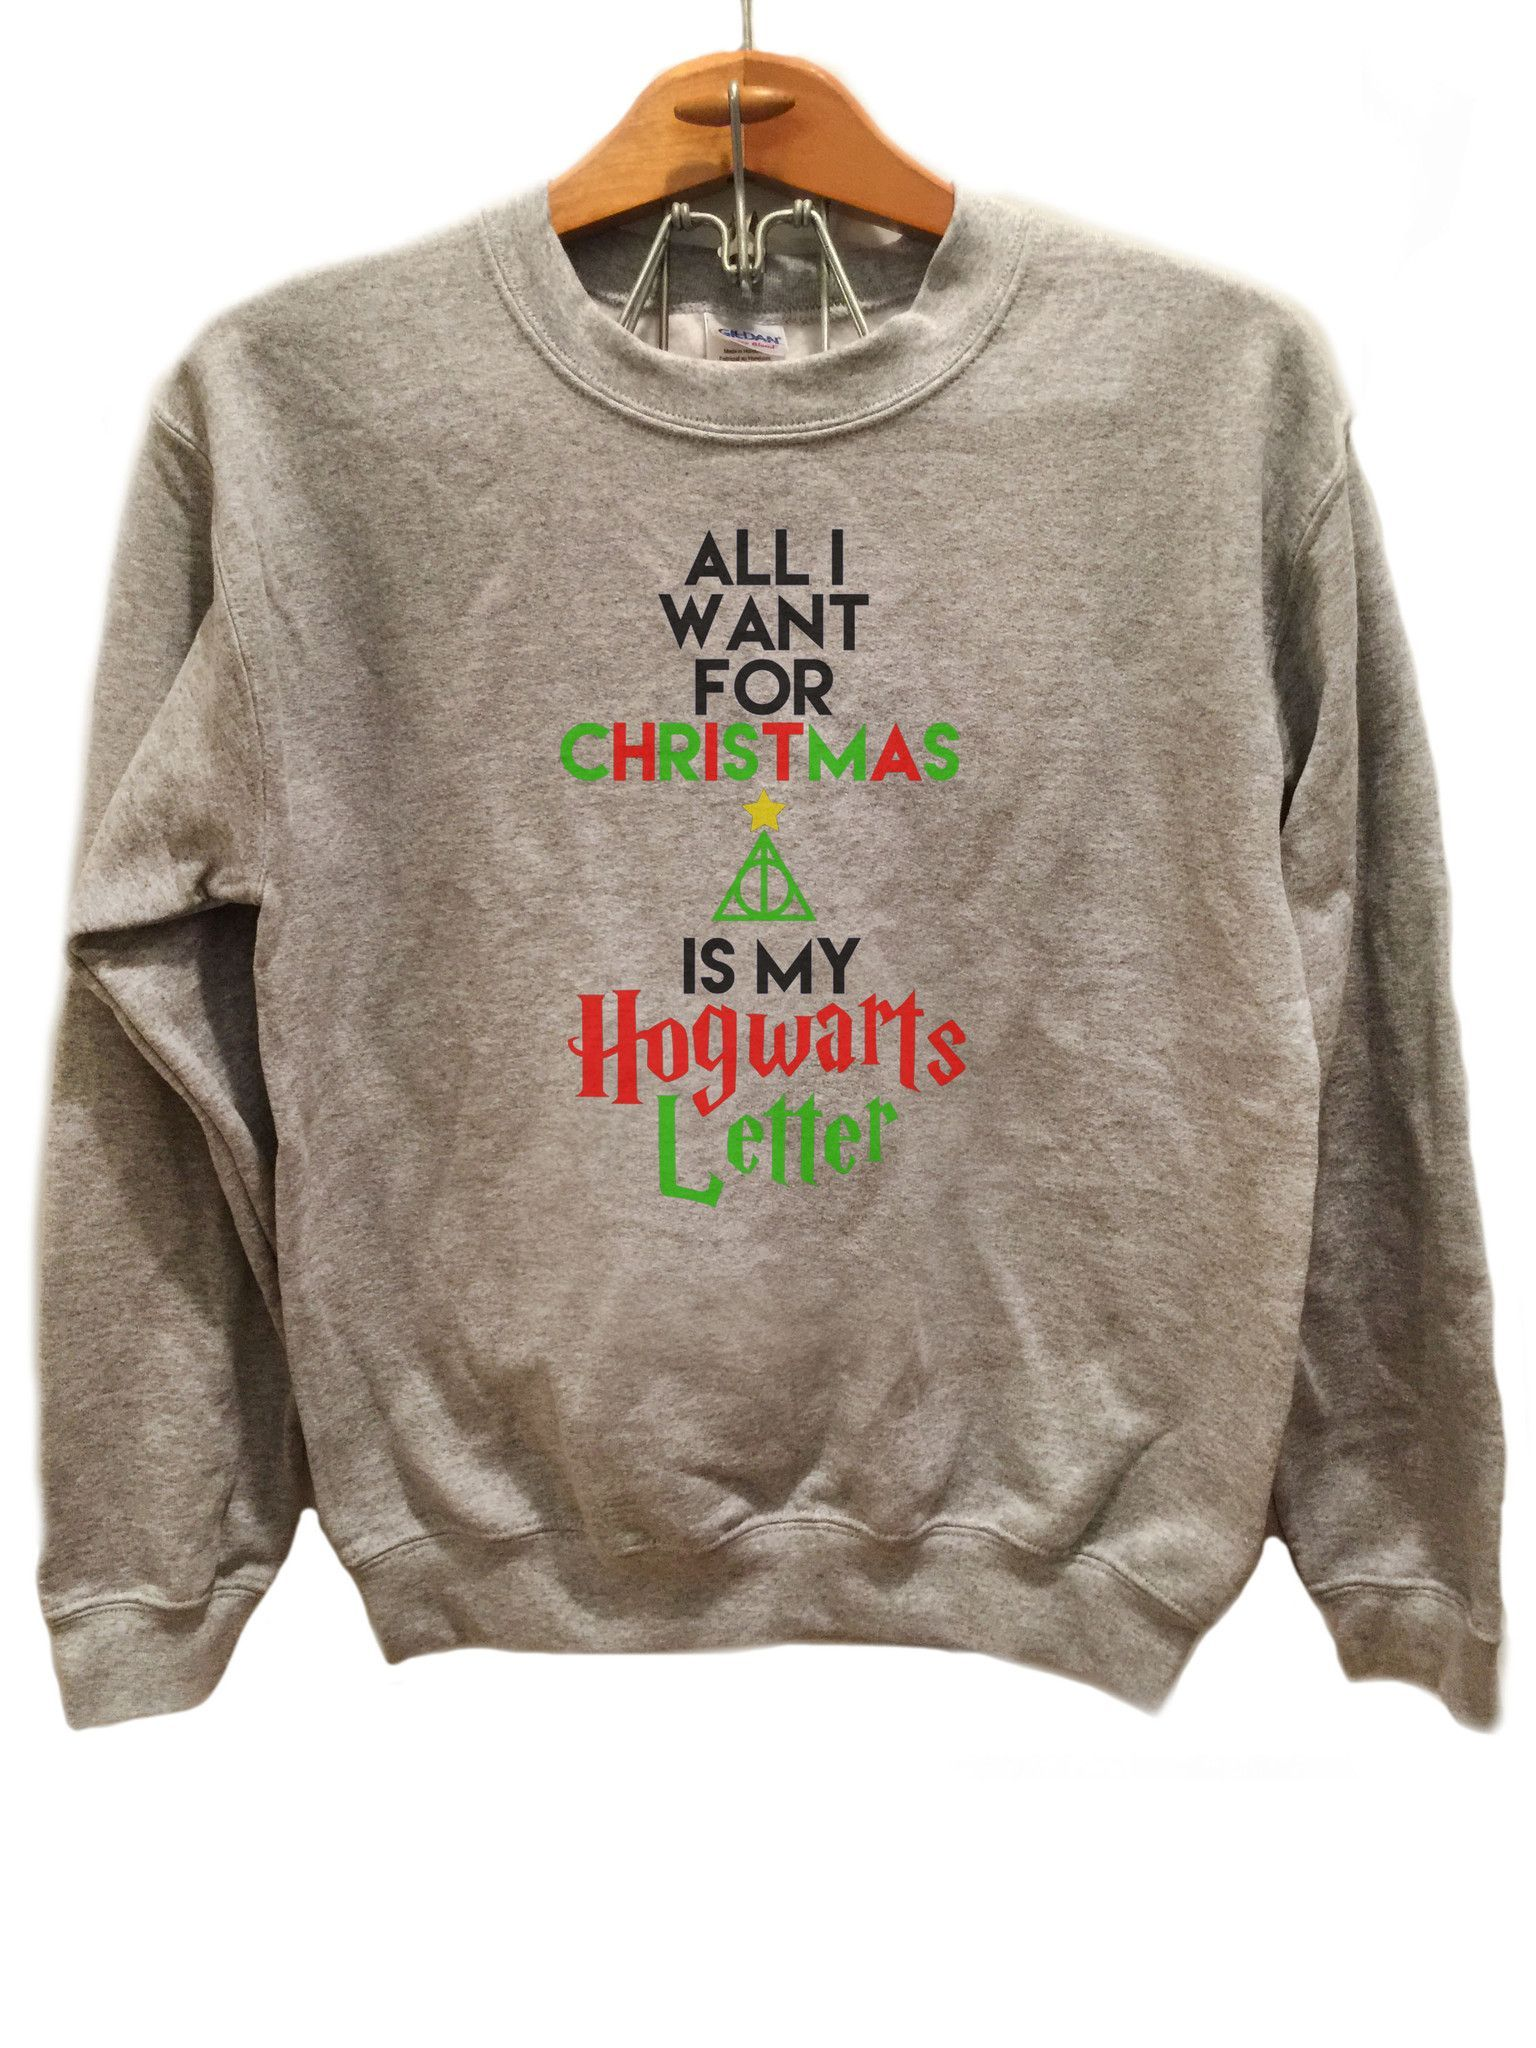 All I want for Christmas is my Hogwarts Letter Harry Potter